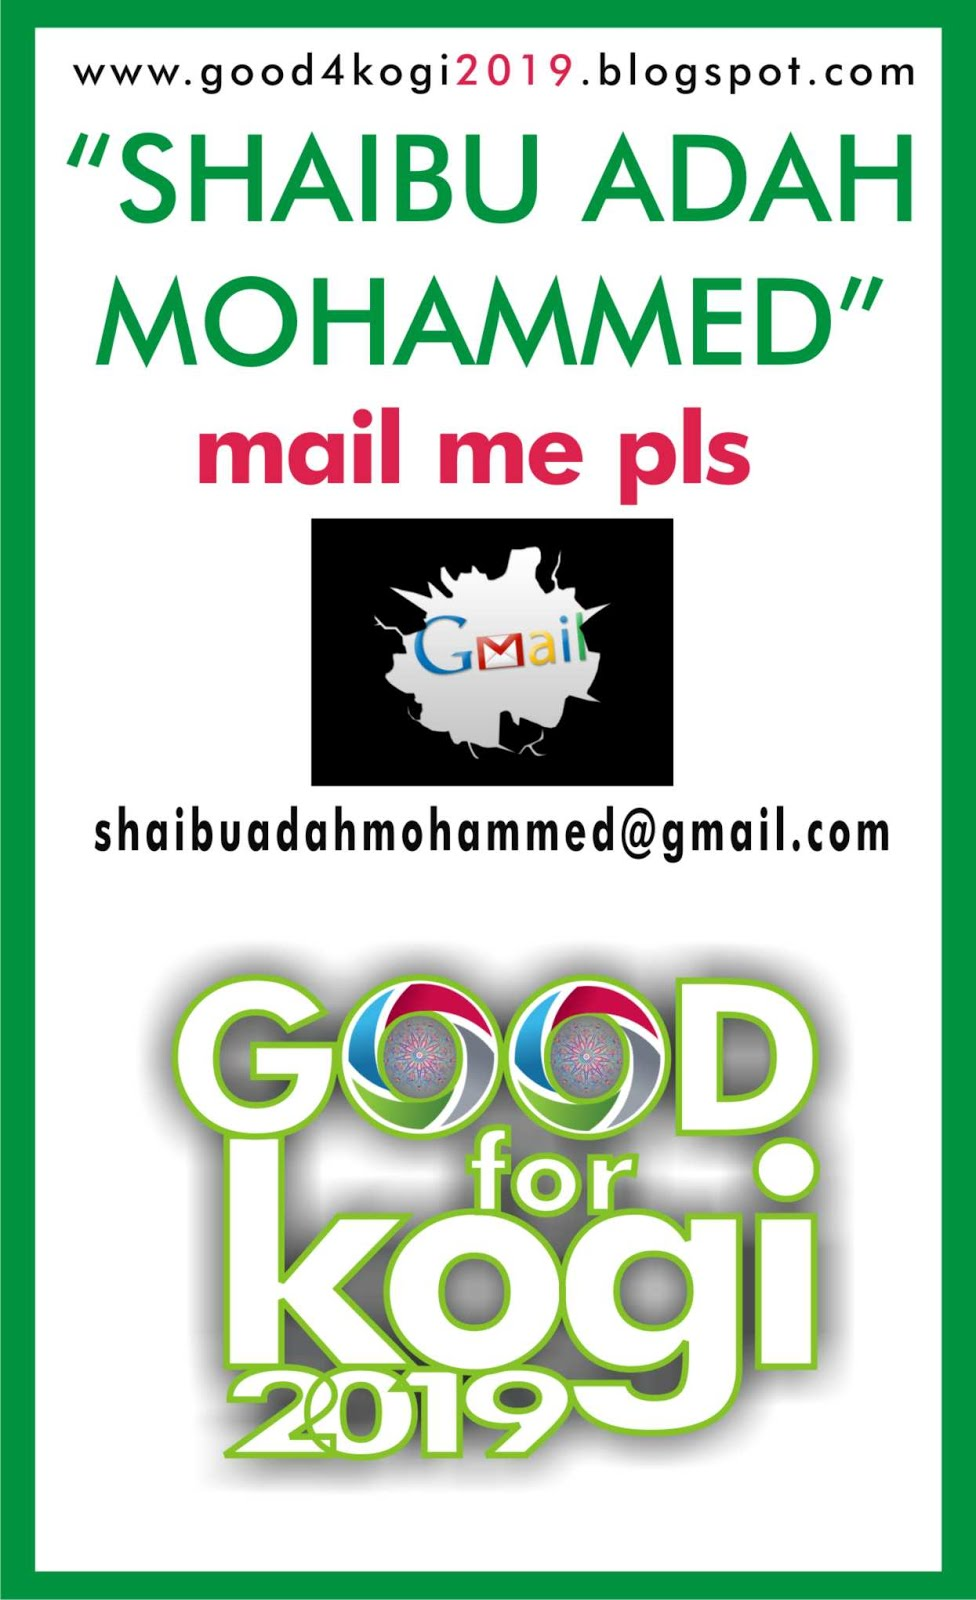 SEND US A MAIL NOW